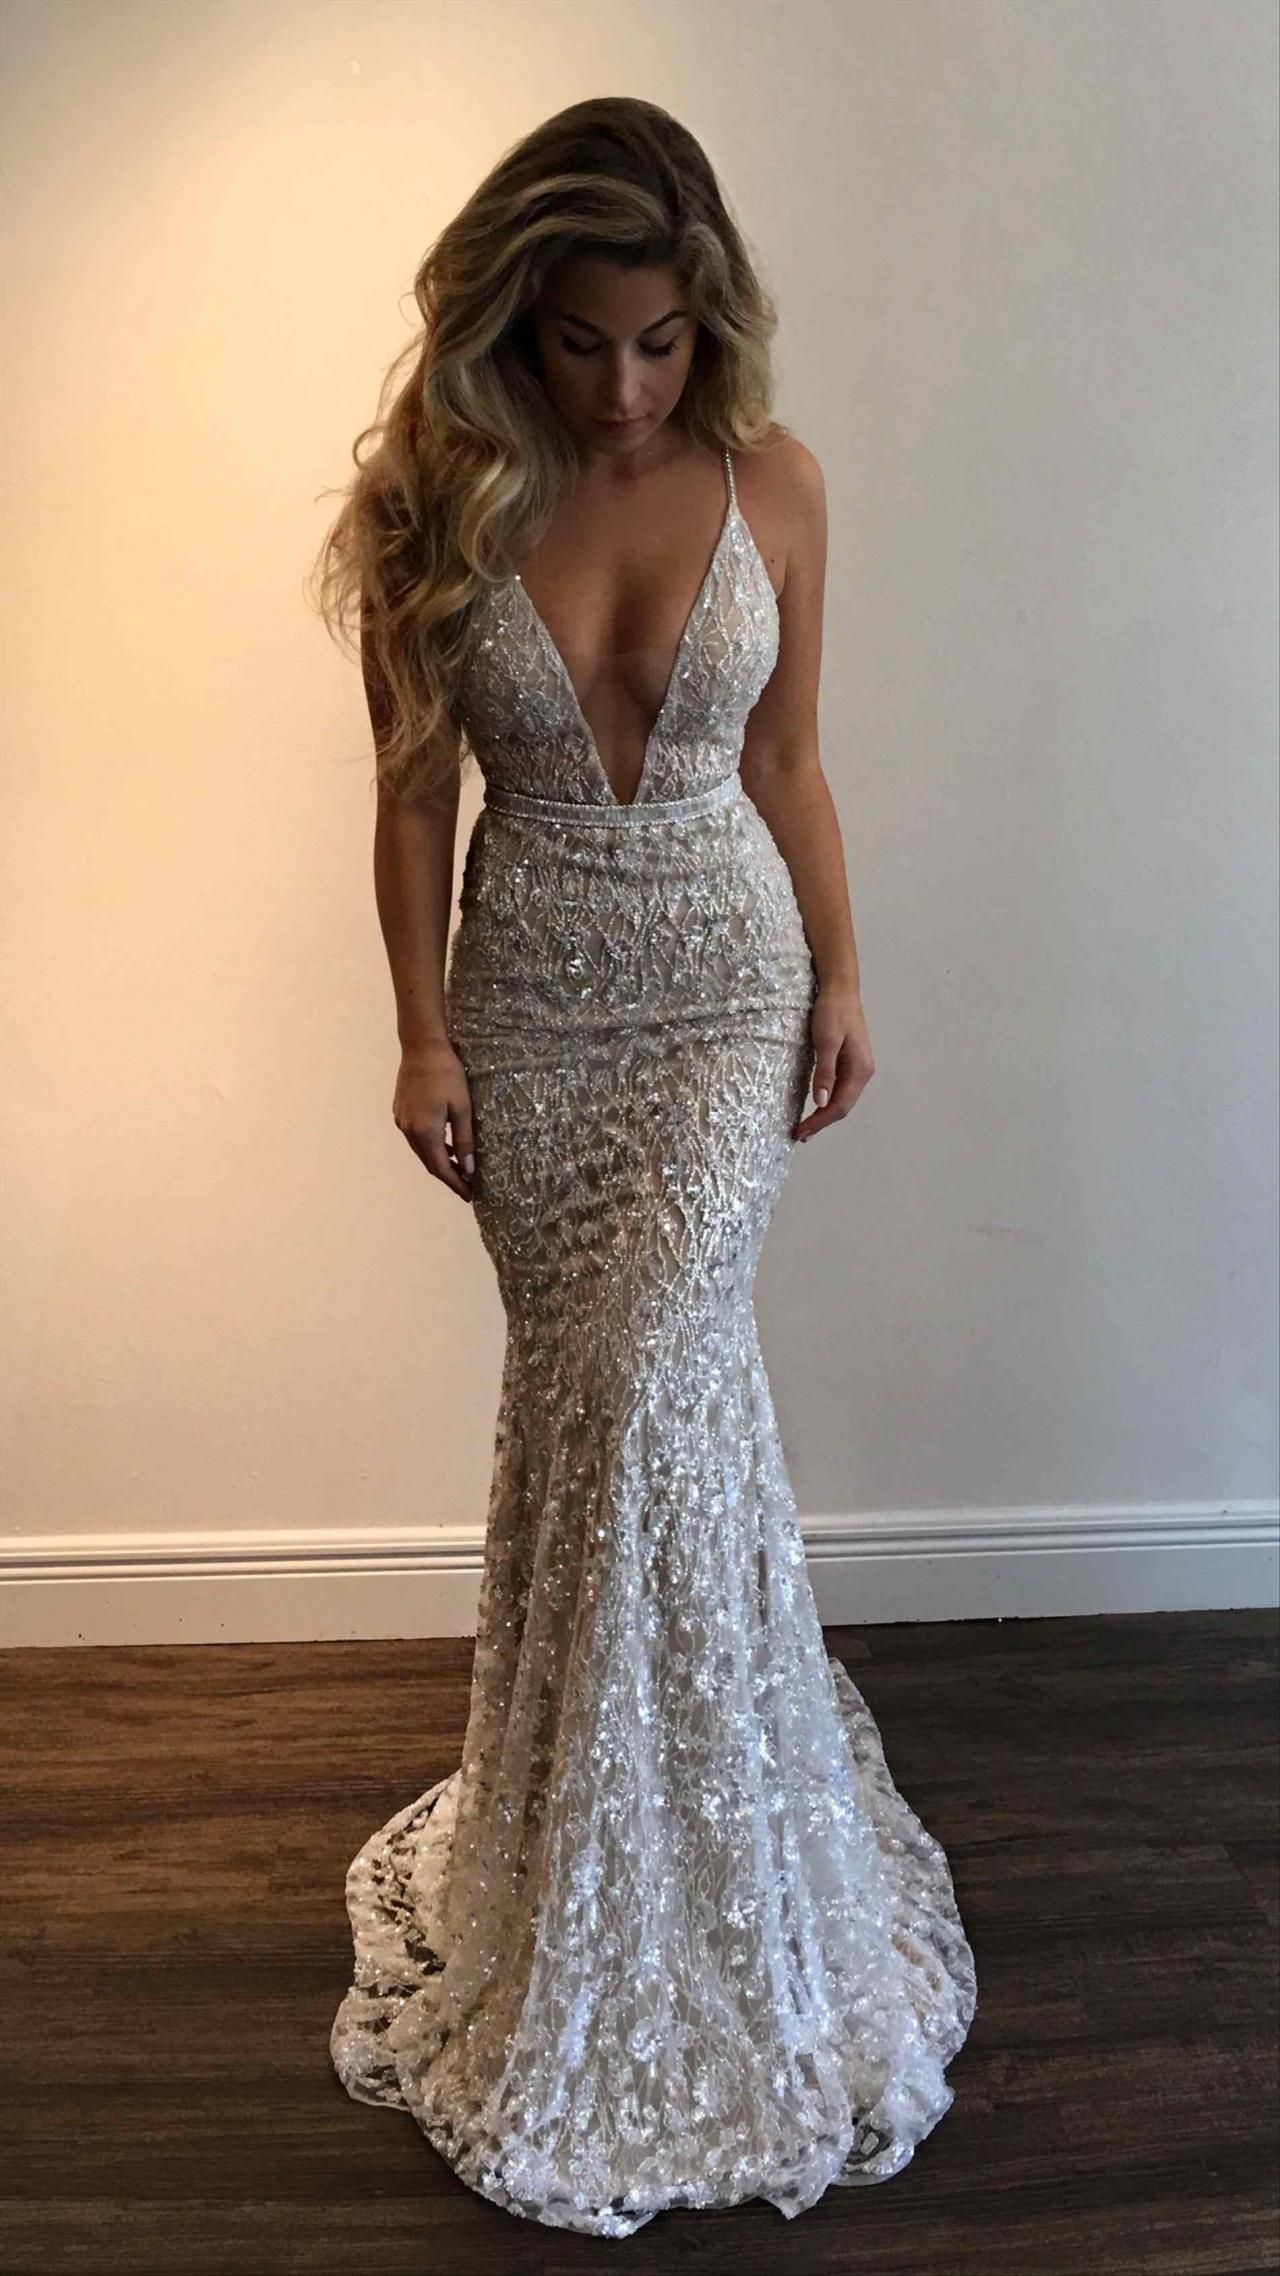 Unique Shining Beaded Prom Dress bf52577dcc1c